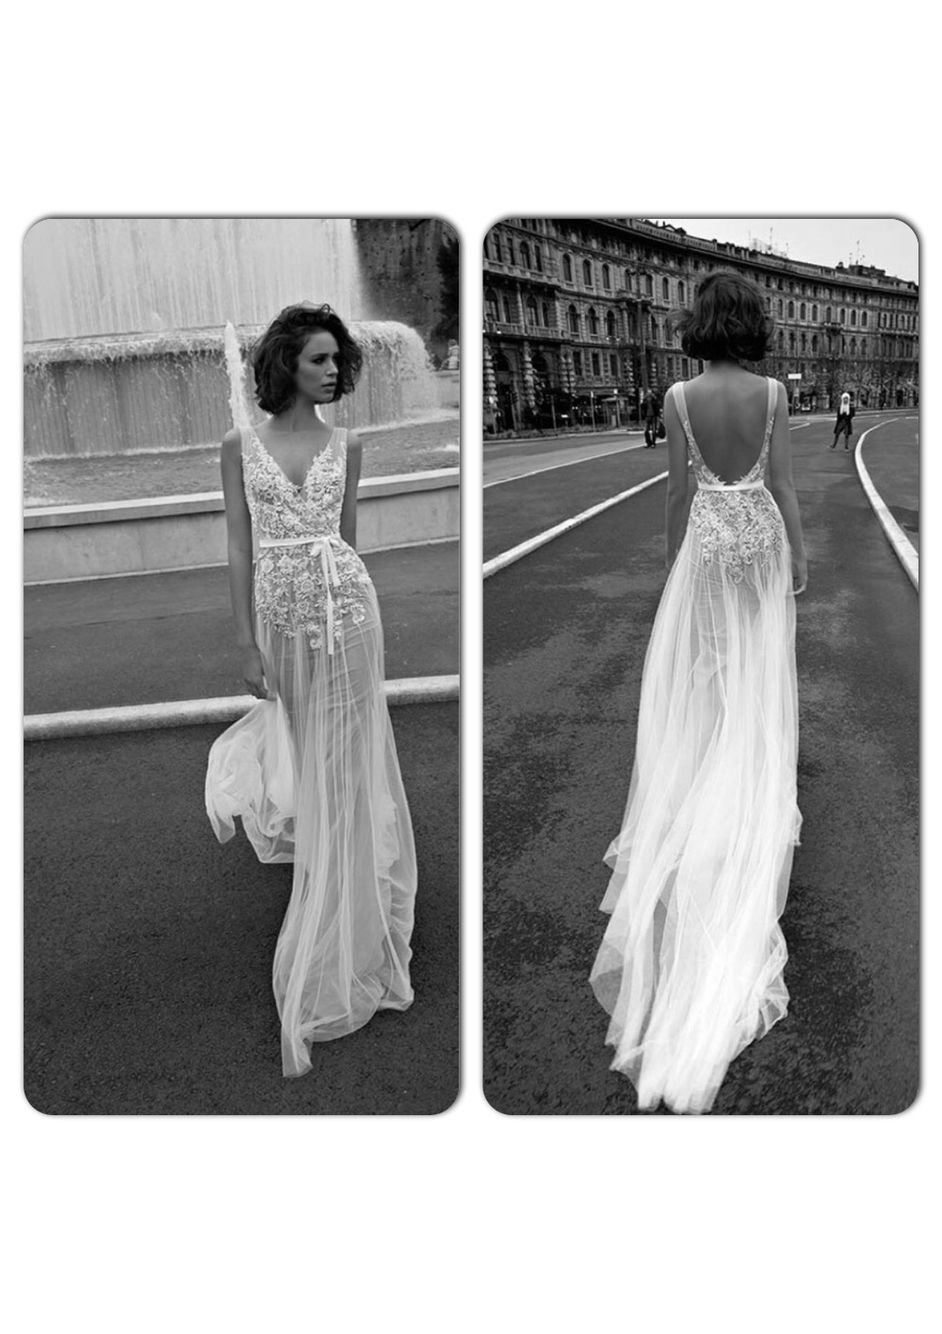 Liz martinez wedding dress  Liz Martinez wedding dress  dresses  Pinterest  Wedding dress